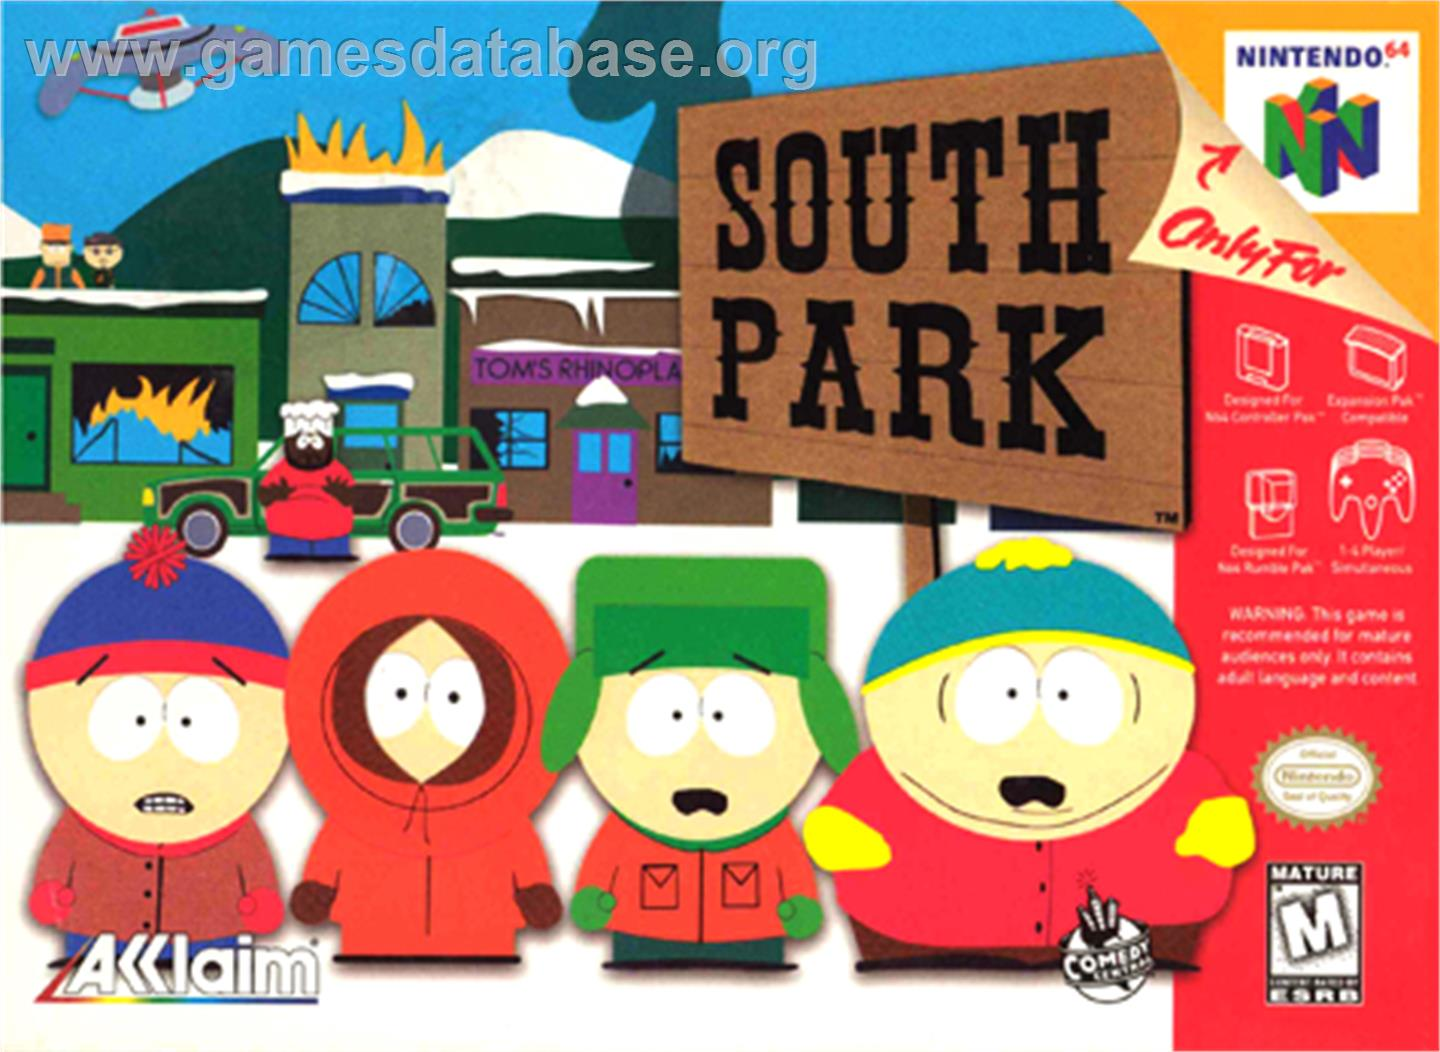 South Park - Nintendo N64 - Artwork - Box